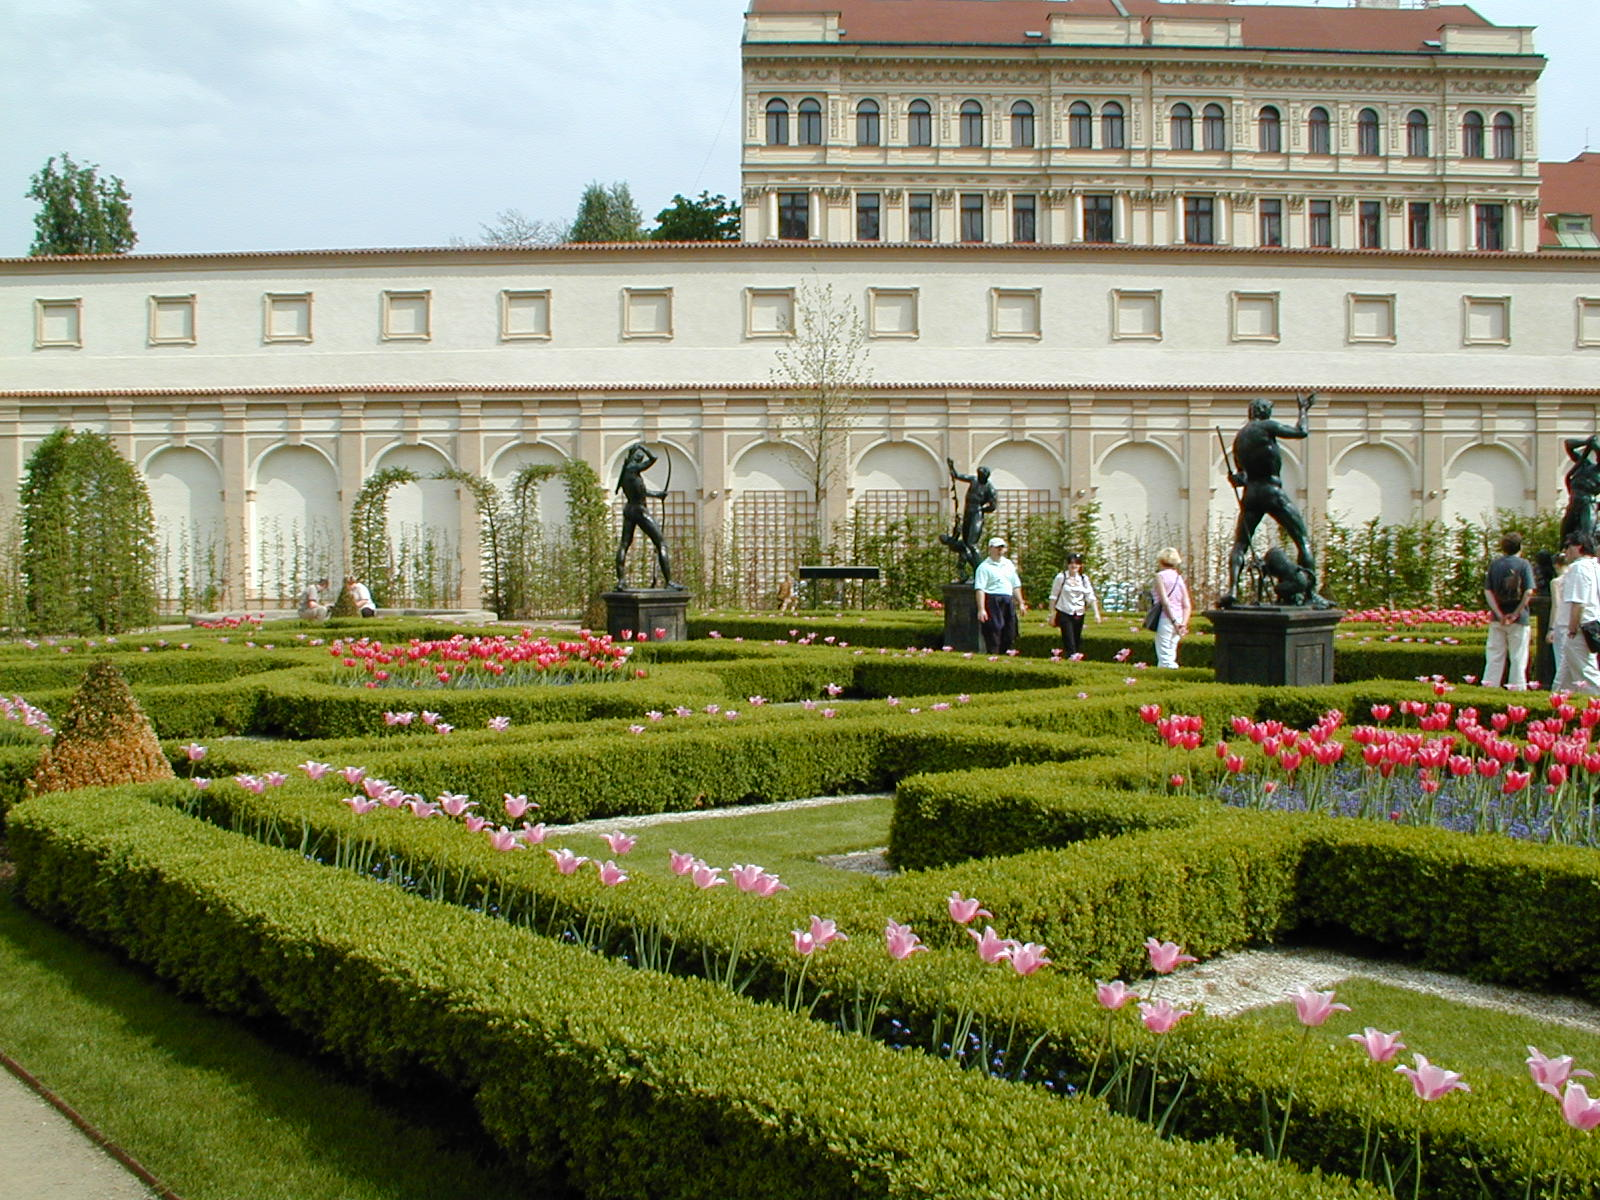 Radio prague les plus beaux jardins de r publique tch que for Jardines wallenstein